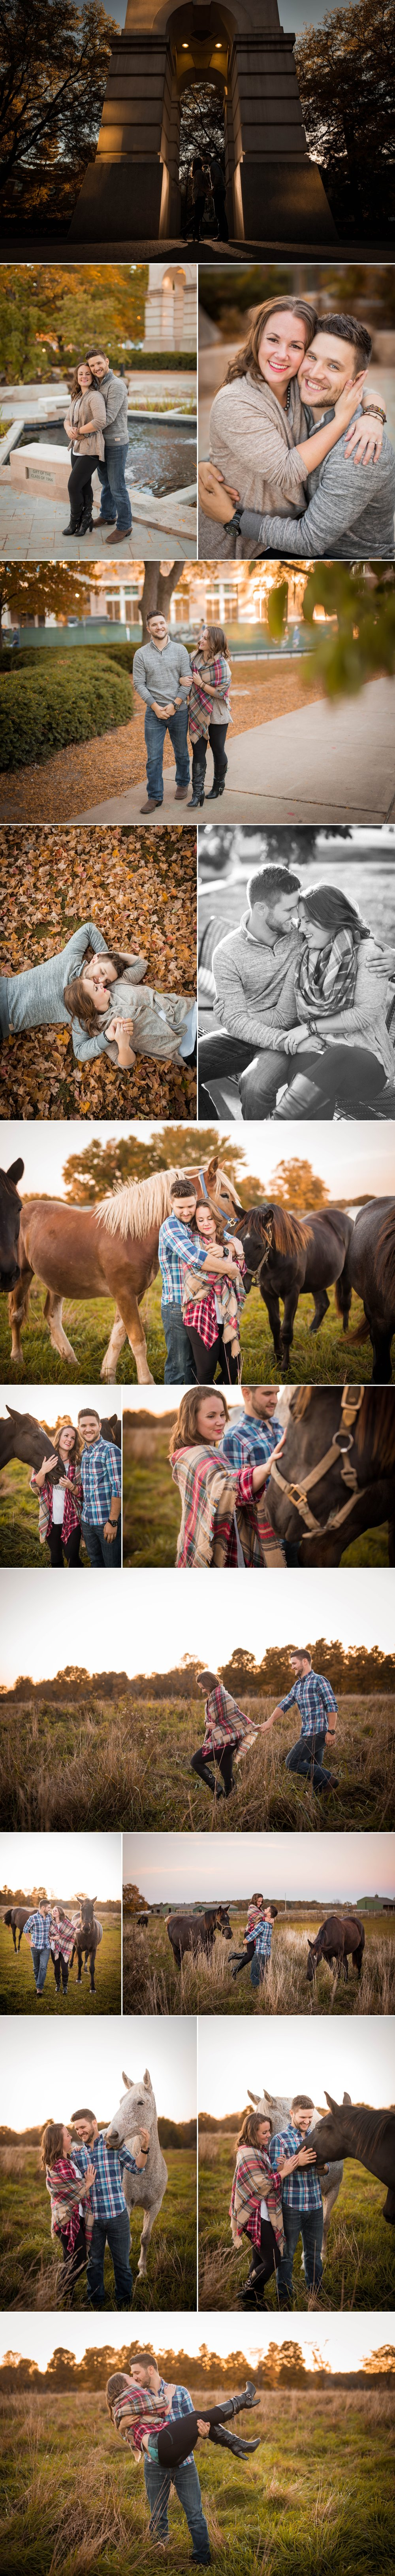 engagement session-farm-horse-purdue university-purdue-lafayette indiana-west lafayette-indiana-fort wayne-fort wayne indiana-indianapolis-wedding photographer-couple-fall